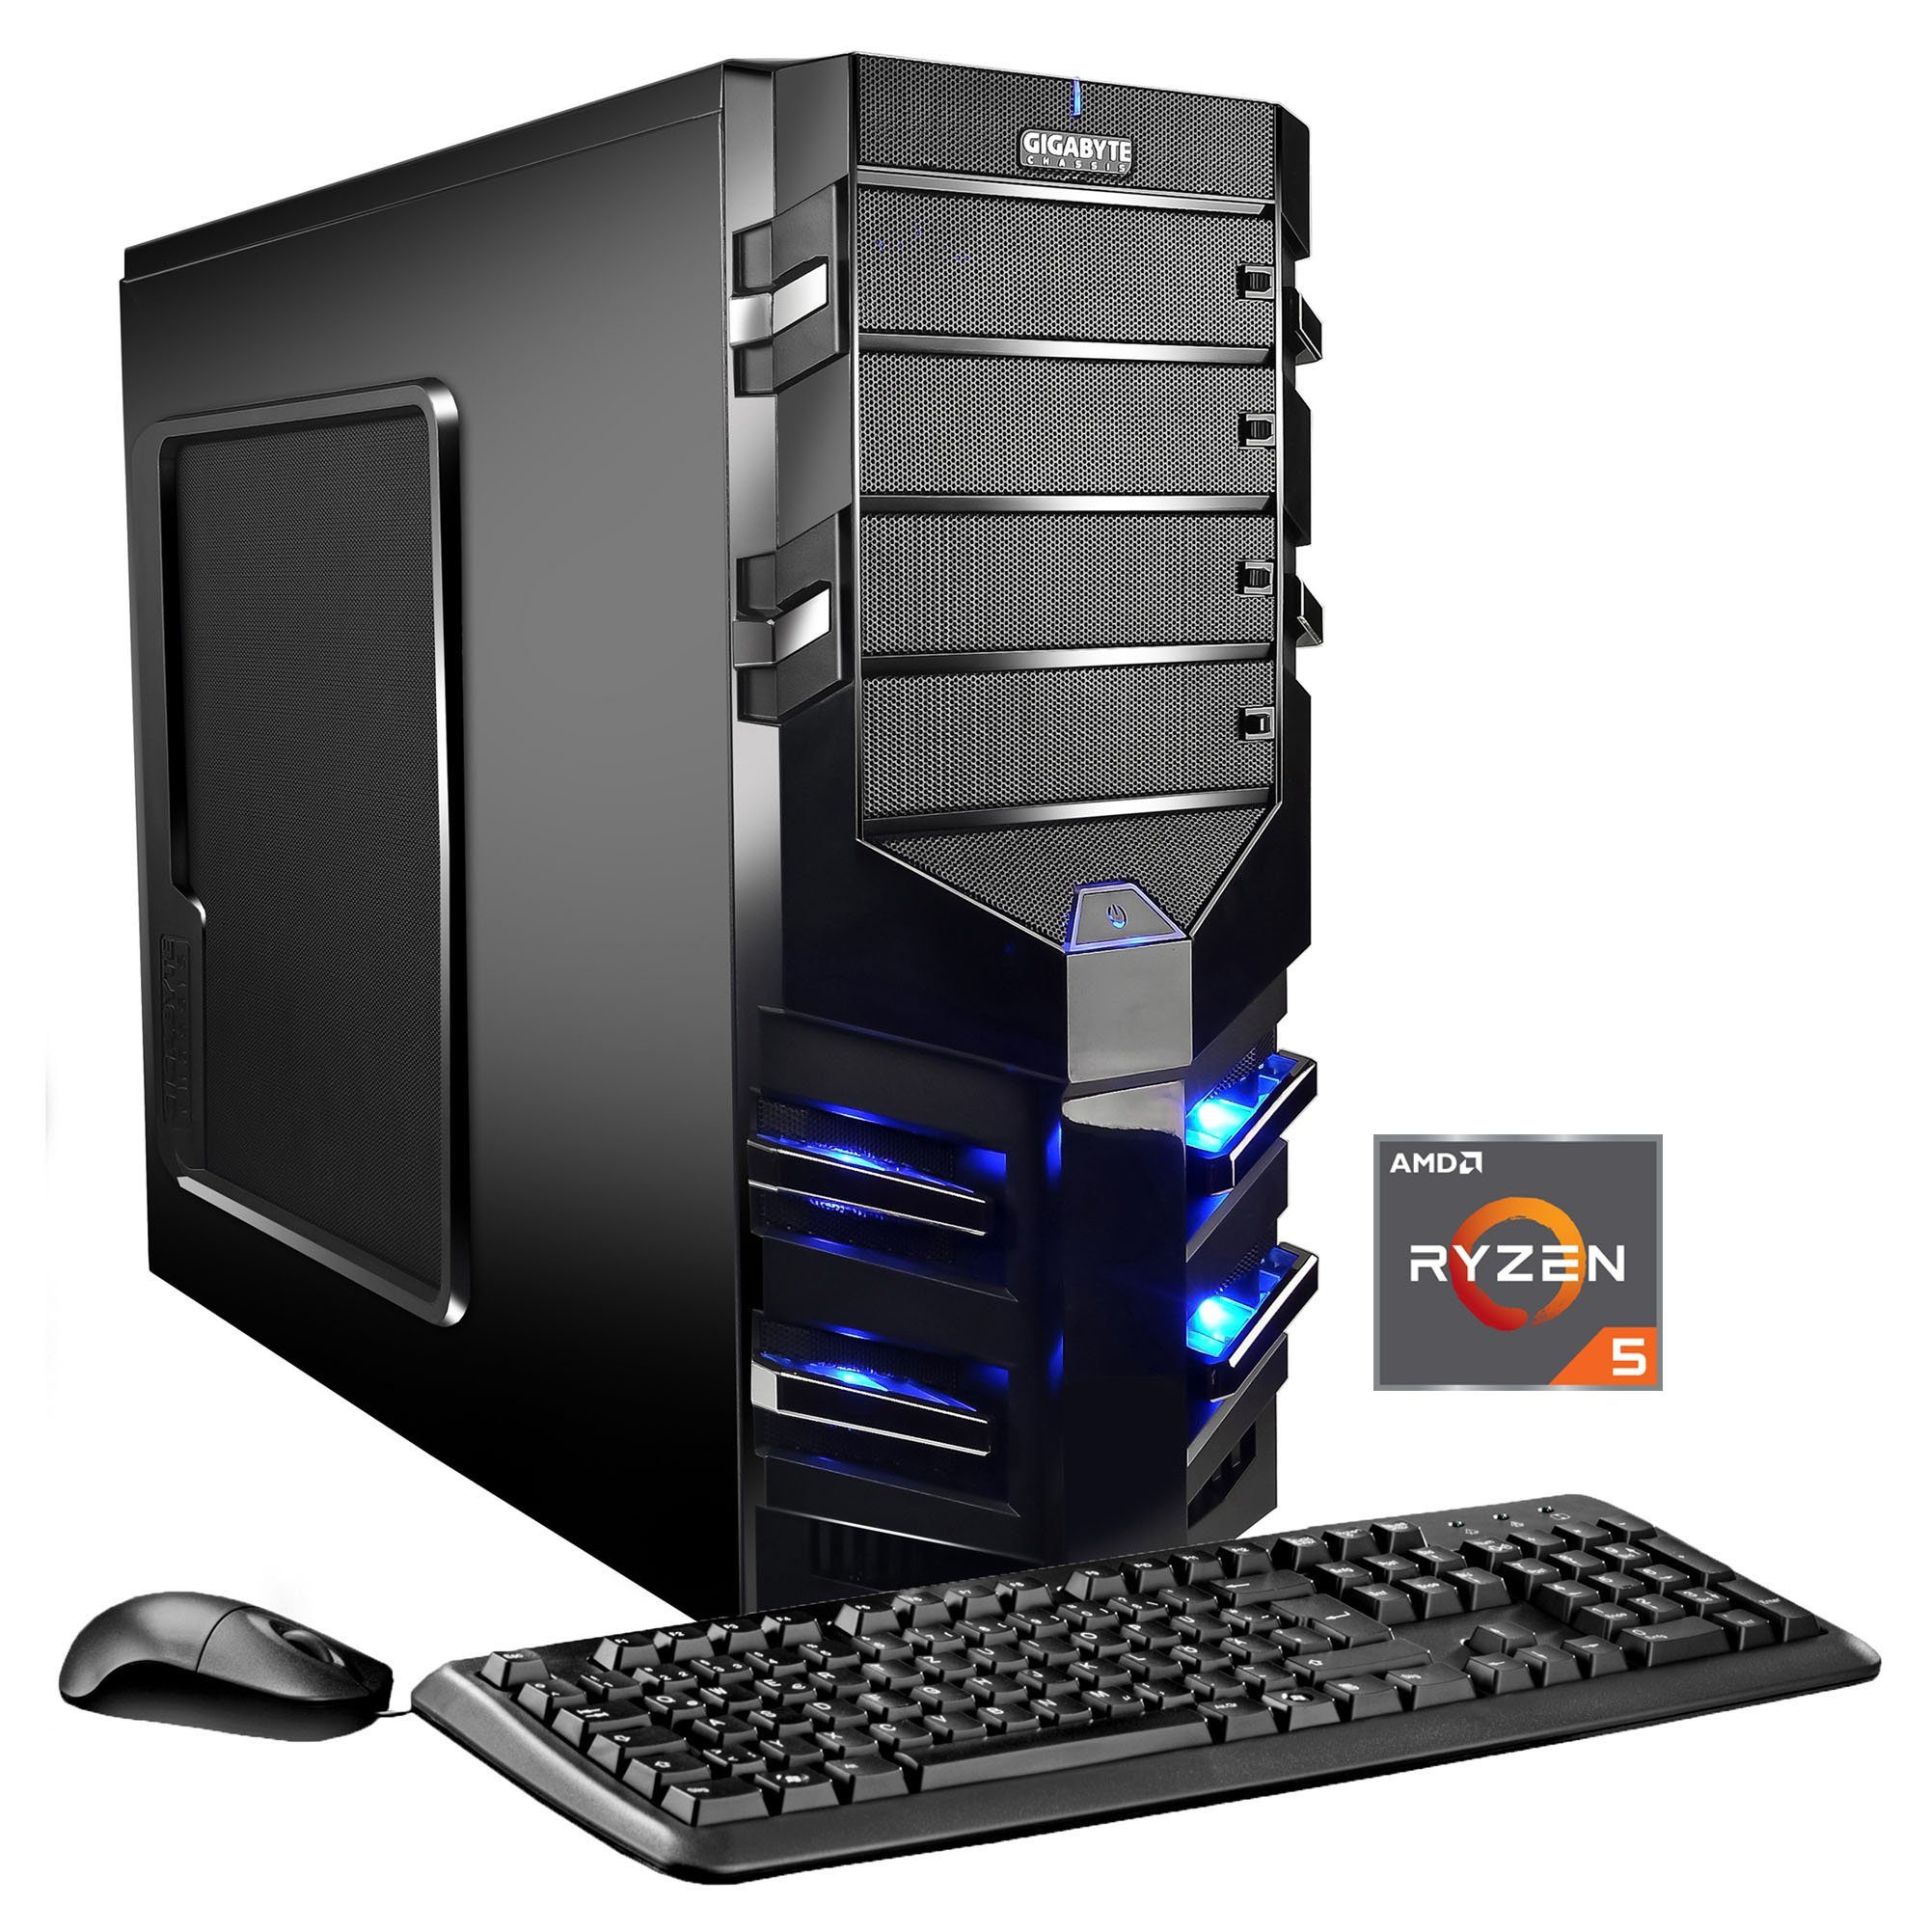 Hyrican Gaming PC AMD Ryzen™ 5 1500X 16GB 120GB SSD 1TB HDD AMD RX 570 »Alpha Gaming 5622«